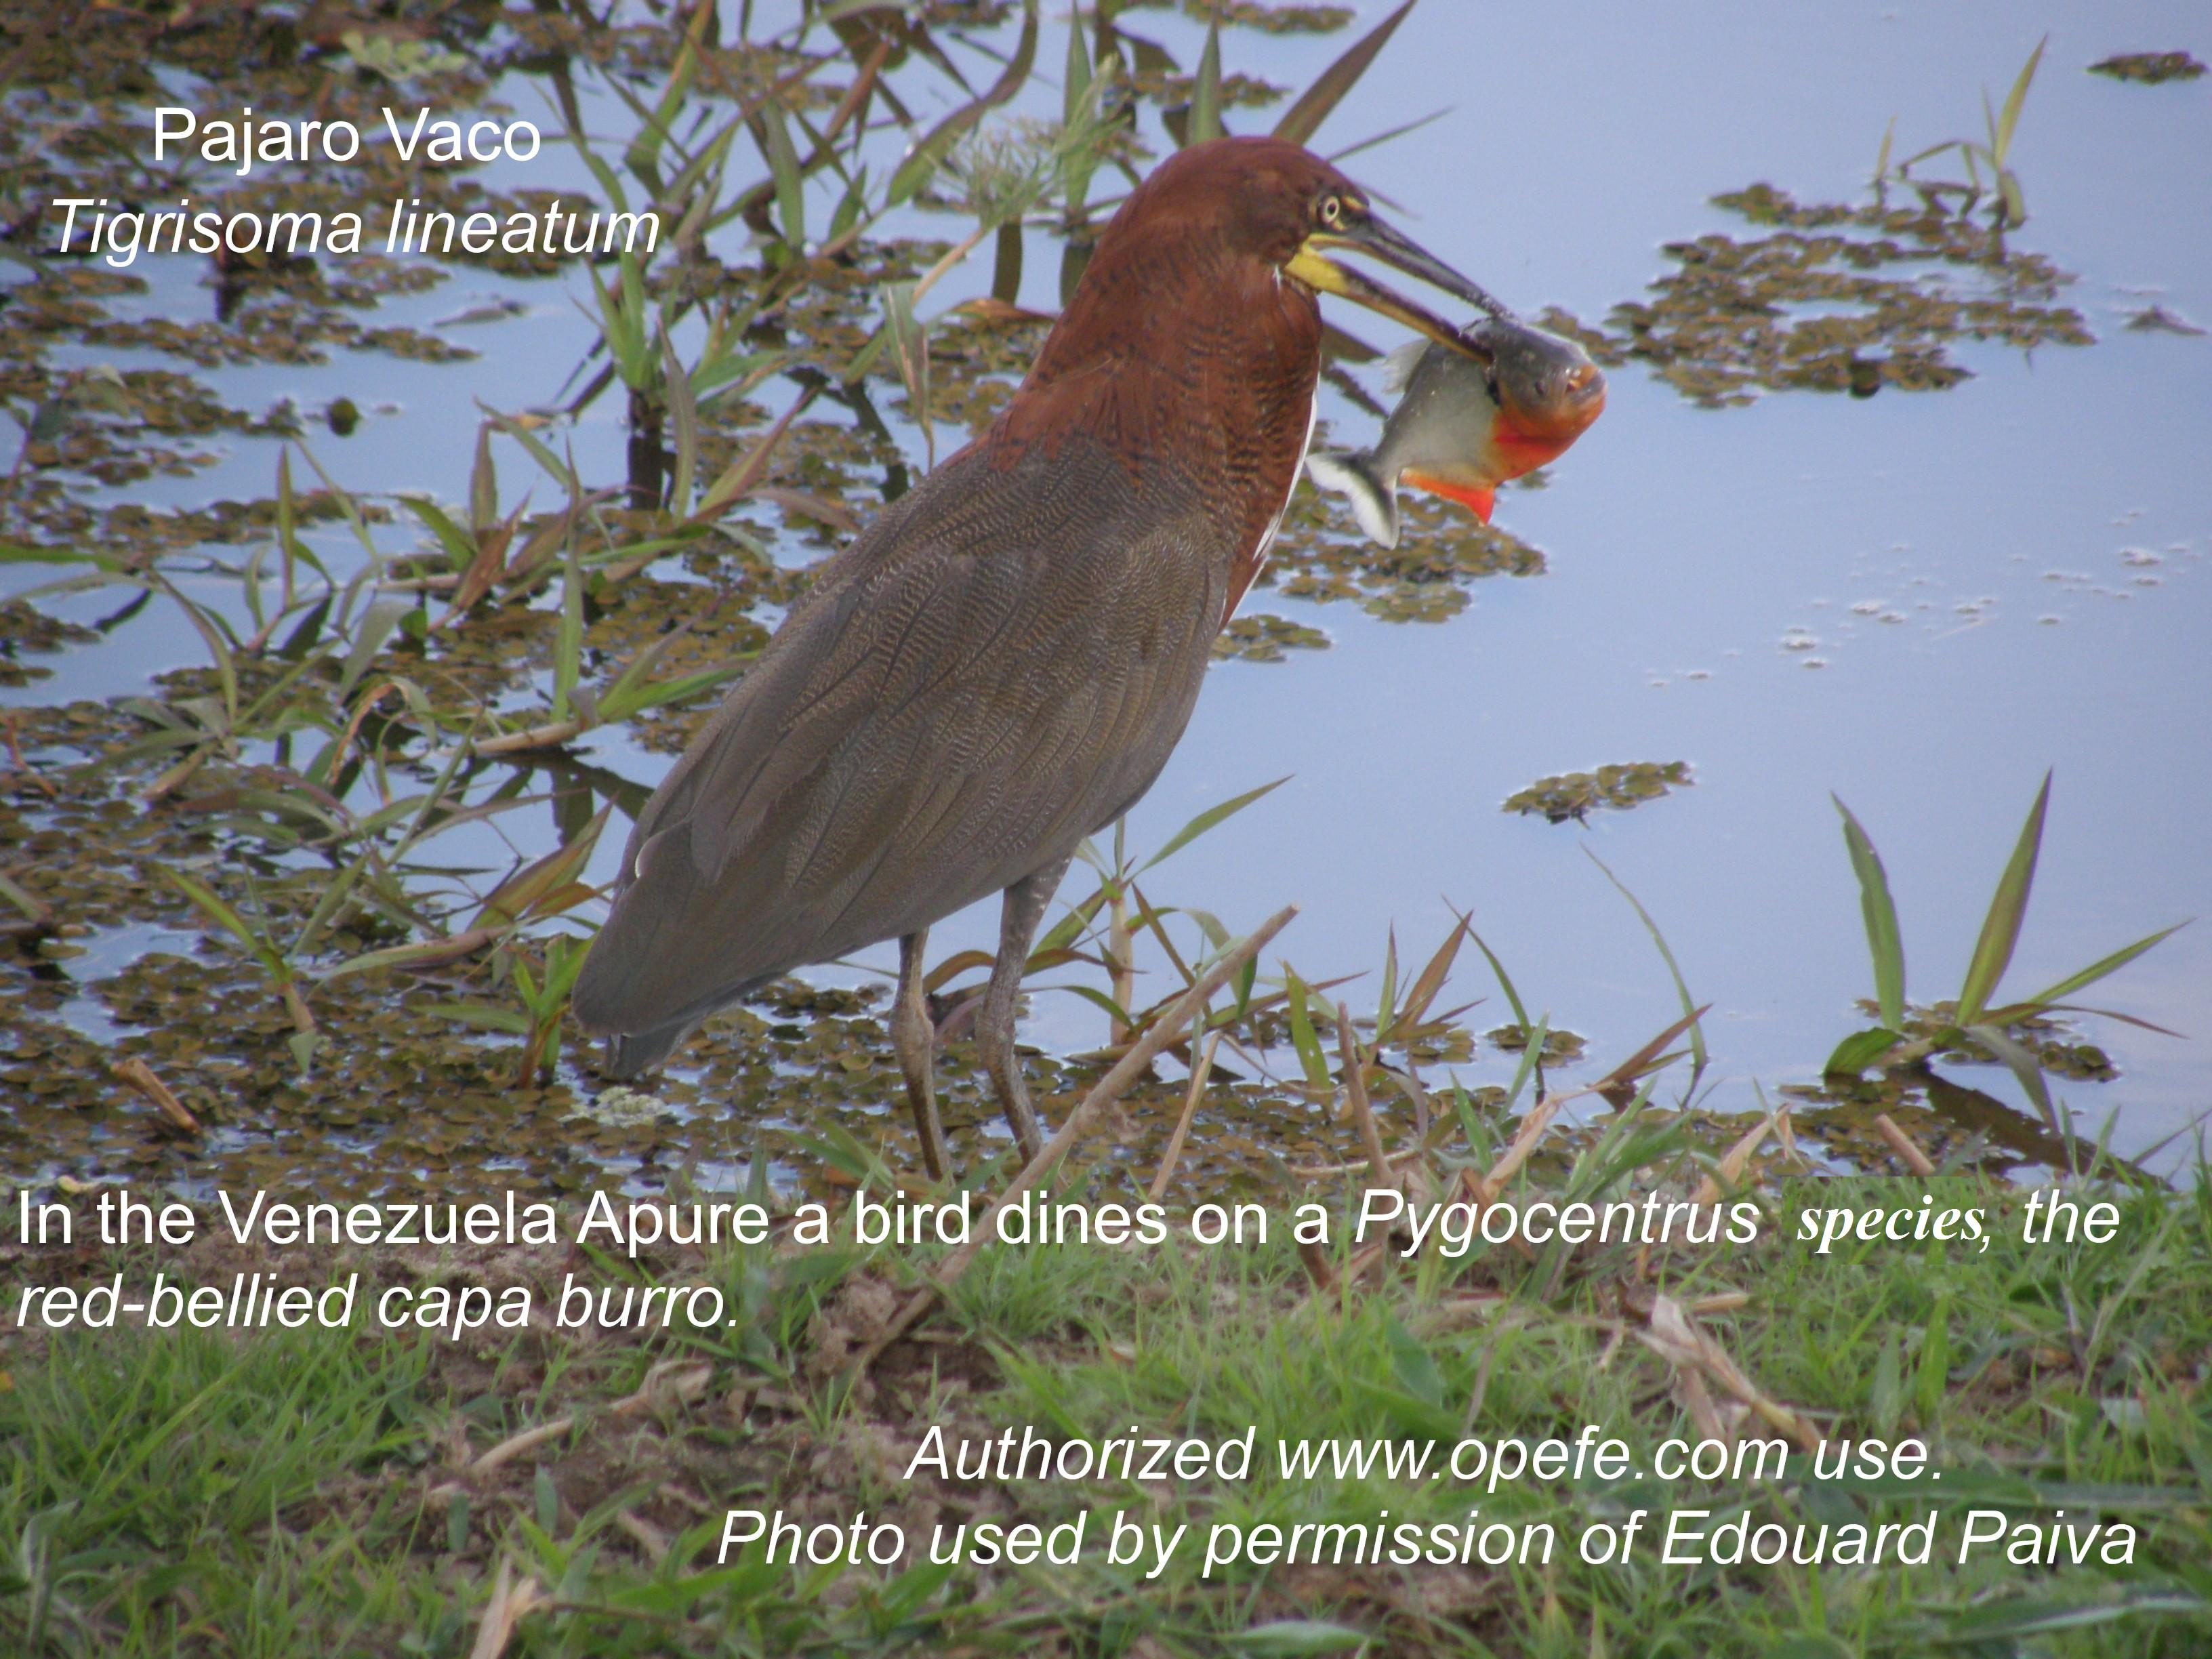 Bird feeding on Pygocentrus speceis in Venezuela. Photo credit Edouardo Paiva